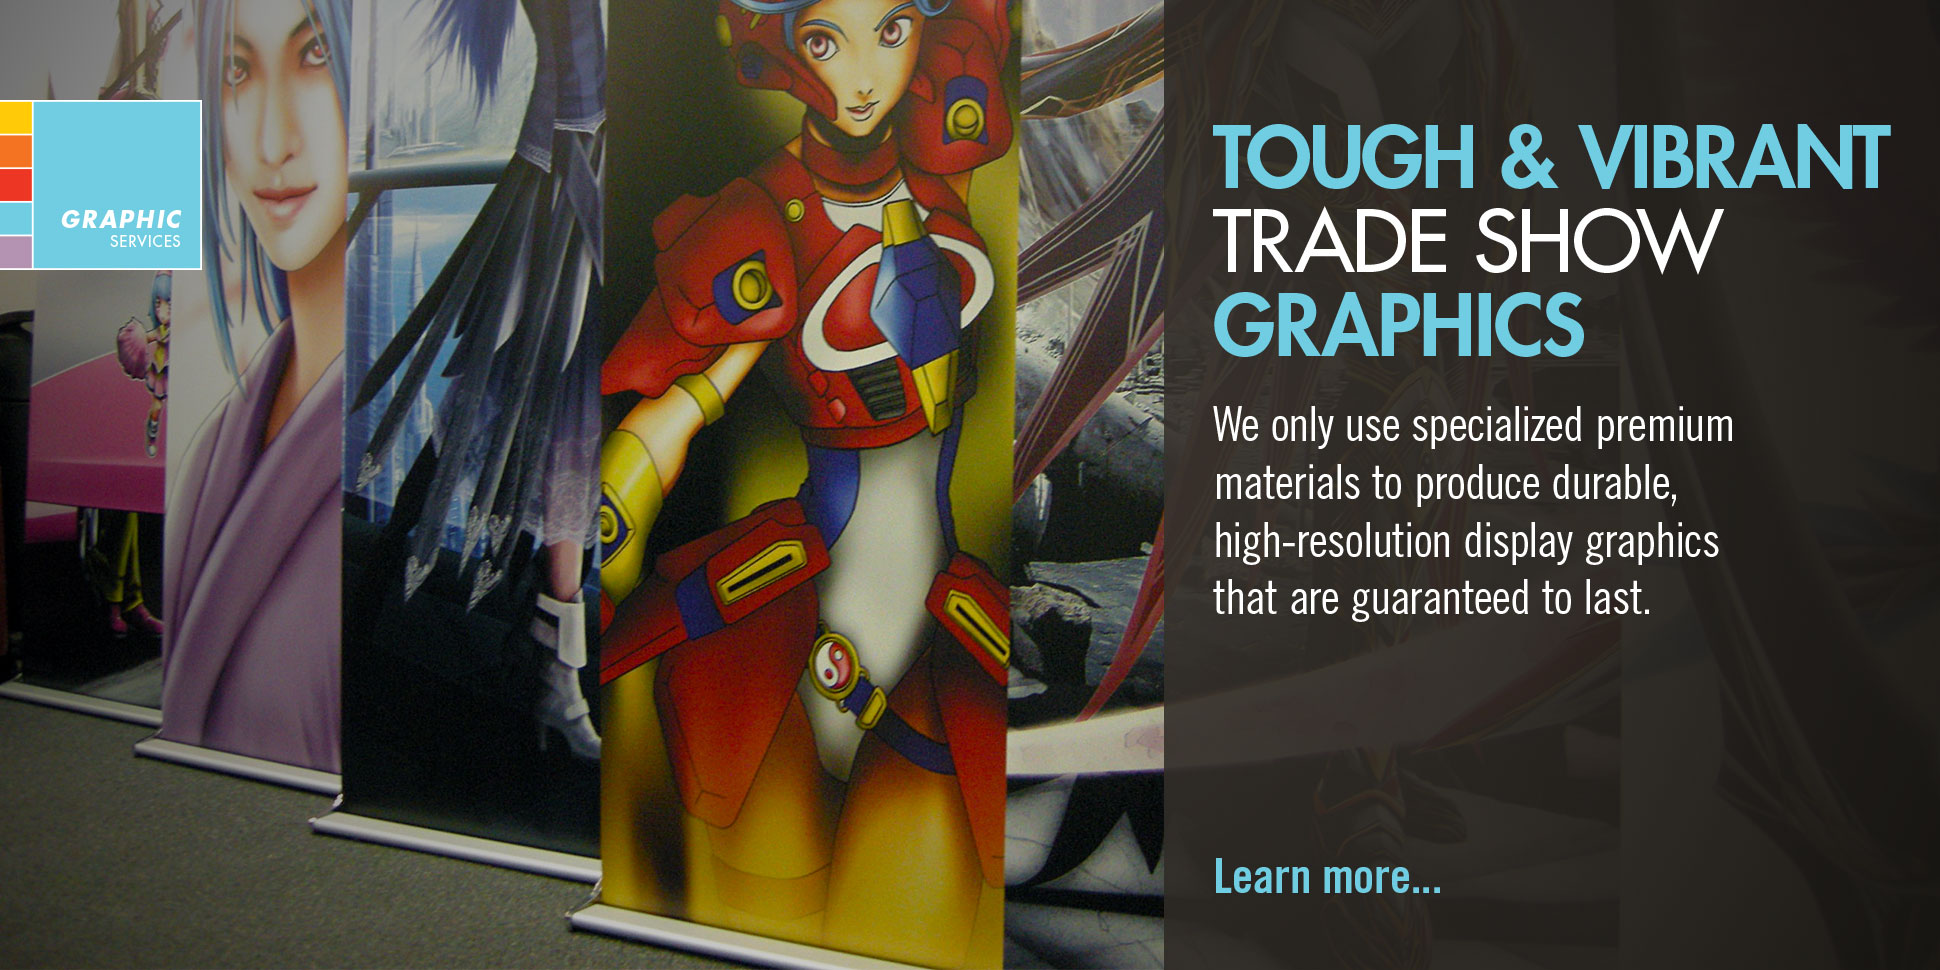 Tough & Vibrant Trade Show Graphics